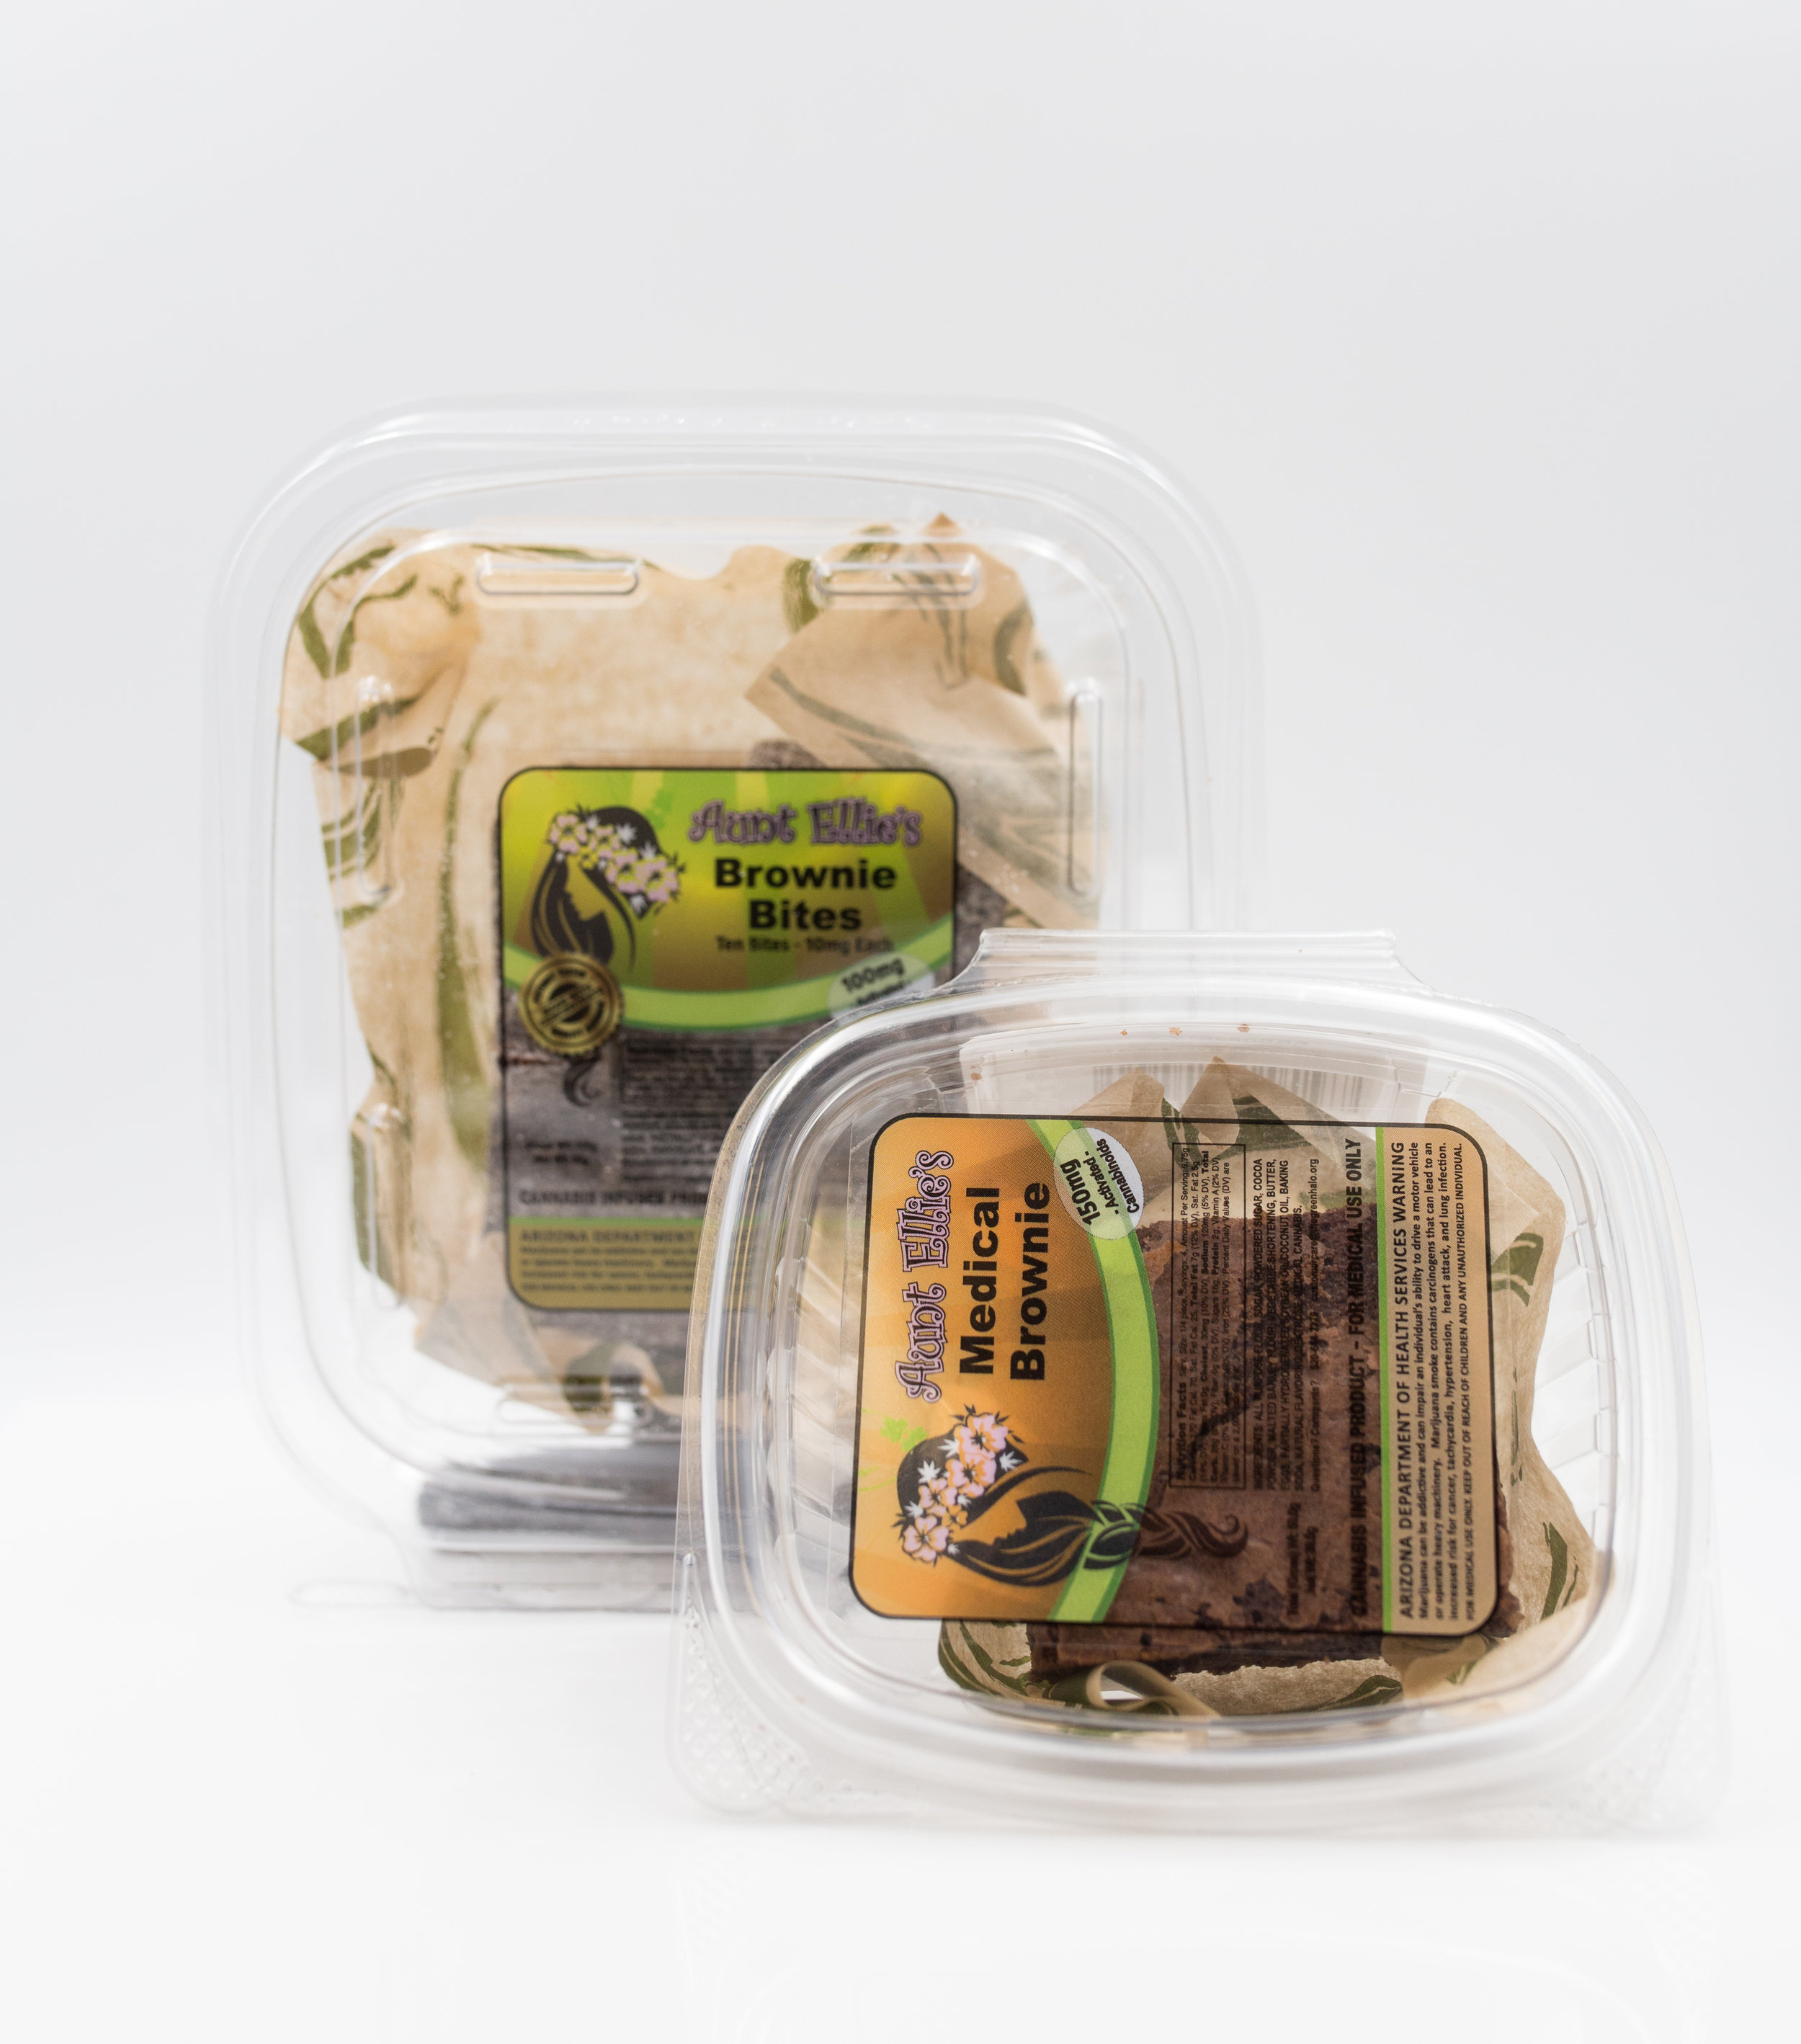 Green Halo provides many products like brownies, cookies, and medical gummies. Try out their edibles when you come in for the special!